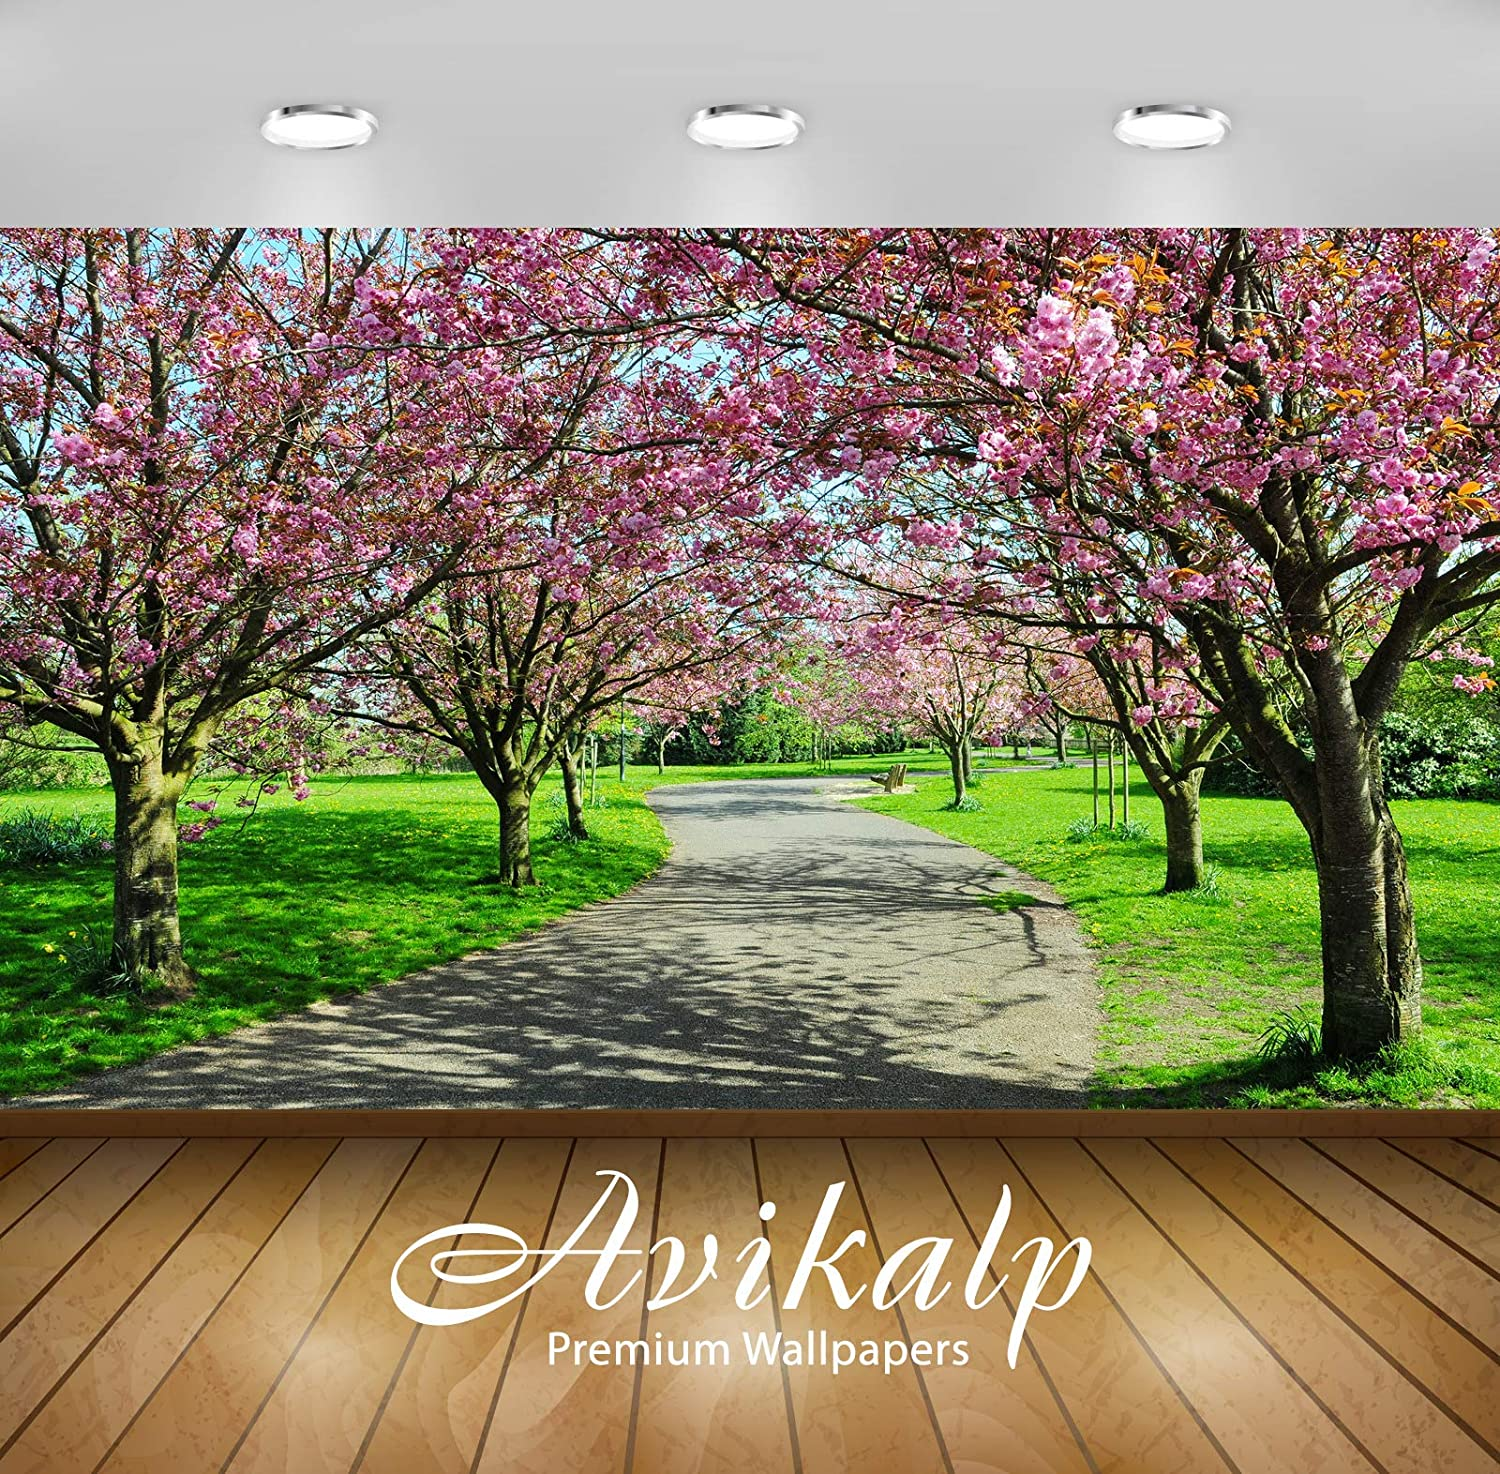 Buy Avikalp Awi3374 Pink Flowers Trees Road Beautiful Nature Scenery Full Hd 3d Scenery Wallpaper Or Wall Sticker Vinyl 121cm X 91cm Online At Low Prices In India Amazon In